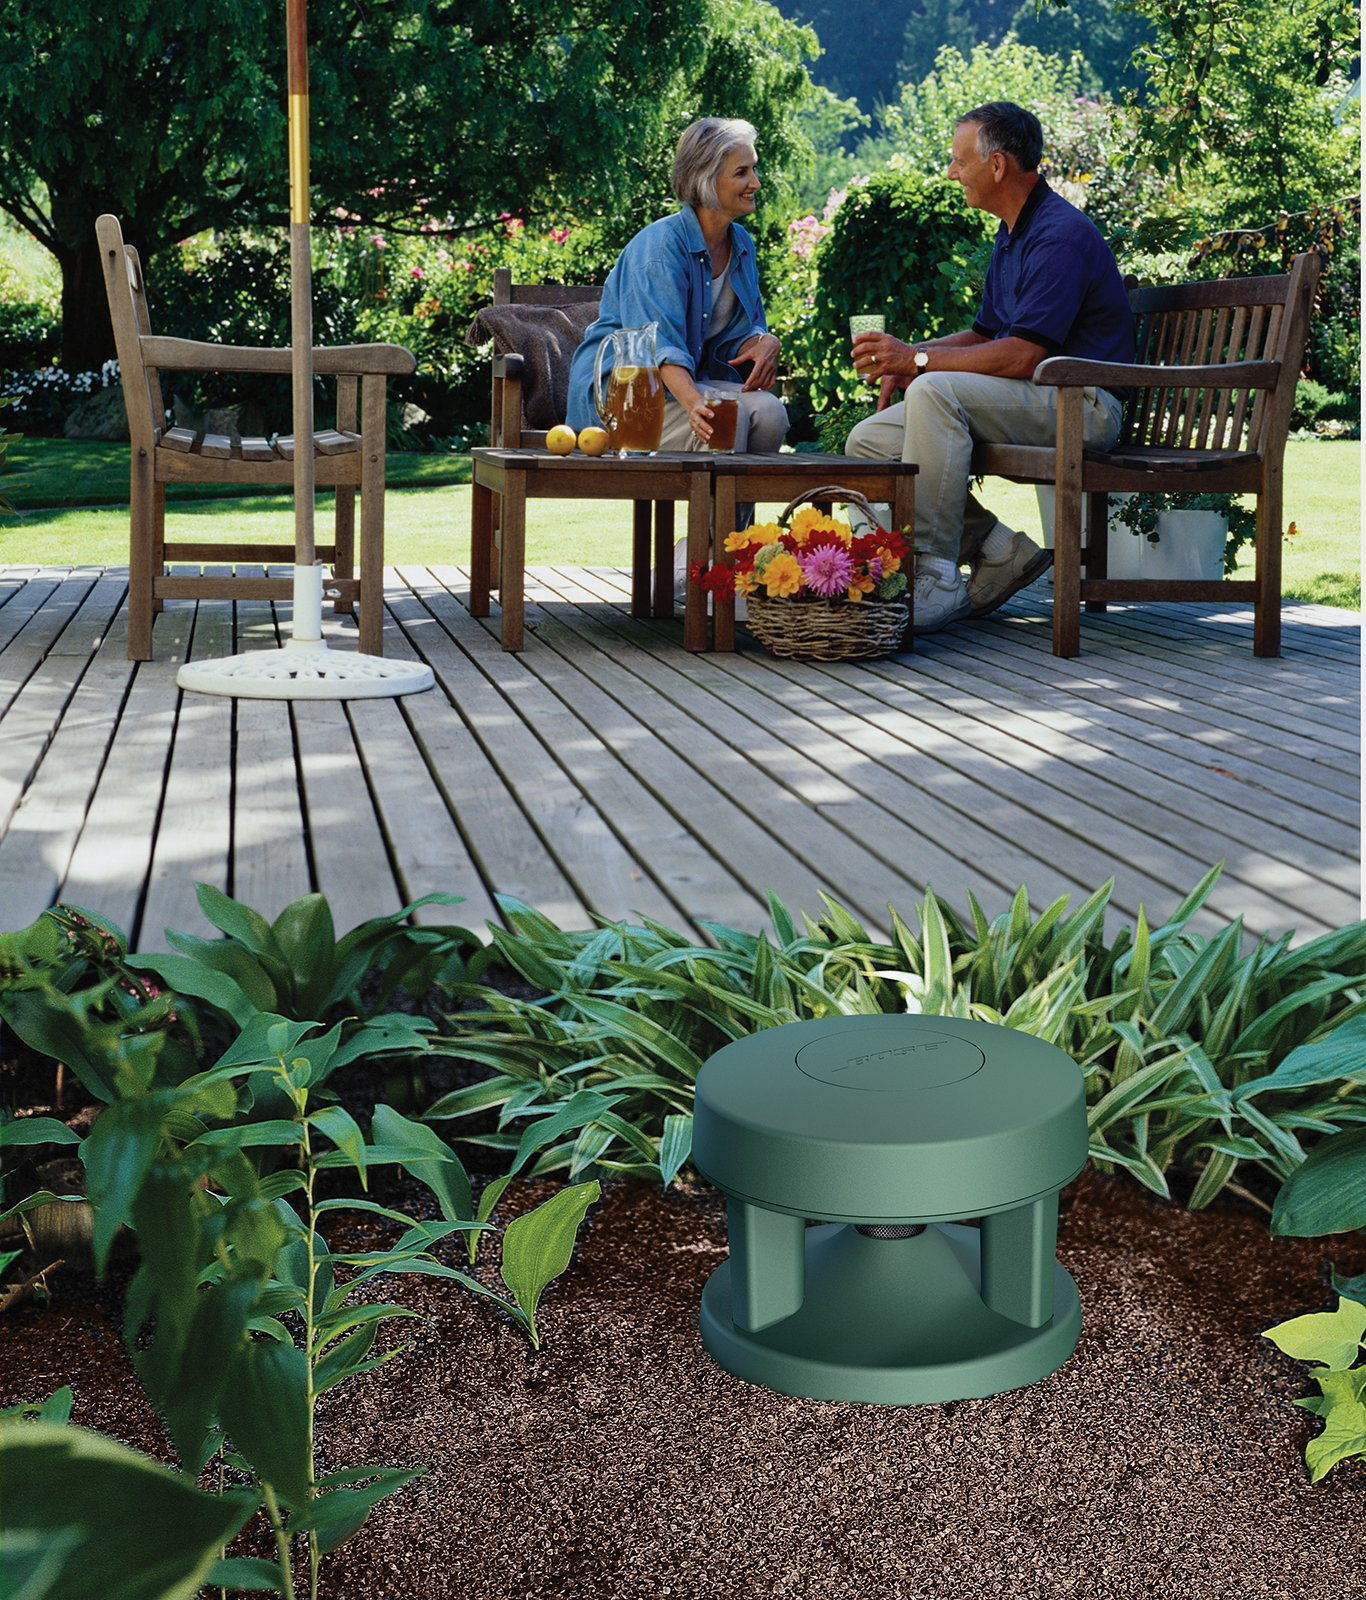 Bose Free Space 51 Outdoor In-Ground Speakers (Green) 2 Downward firing 4-1/4 full range driver.Dimensions-Each speaker:36 cm H x 32 cm W x 32 cm D Innovative radial design disperse sound in a 360 degree pattern and centrally located port enhances low-frequency performance to deliver the depth and richness of music outdoors Rugged, flexible design withstands temperatures from -40 to +150 degrees Fahrenheit, and passed the rigorous salt fog test 66% longer than required by the Marine Industry Standard